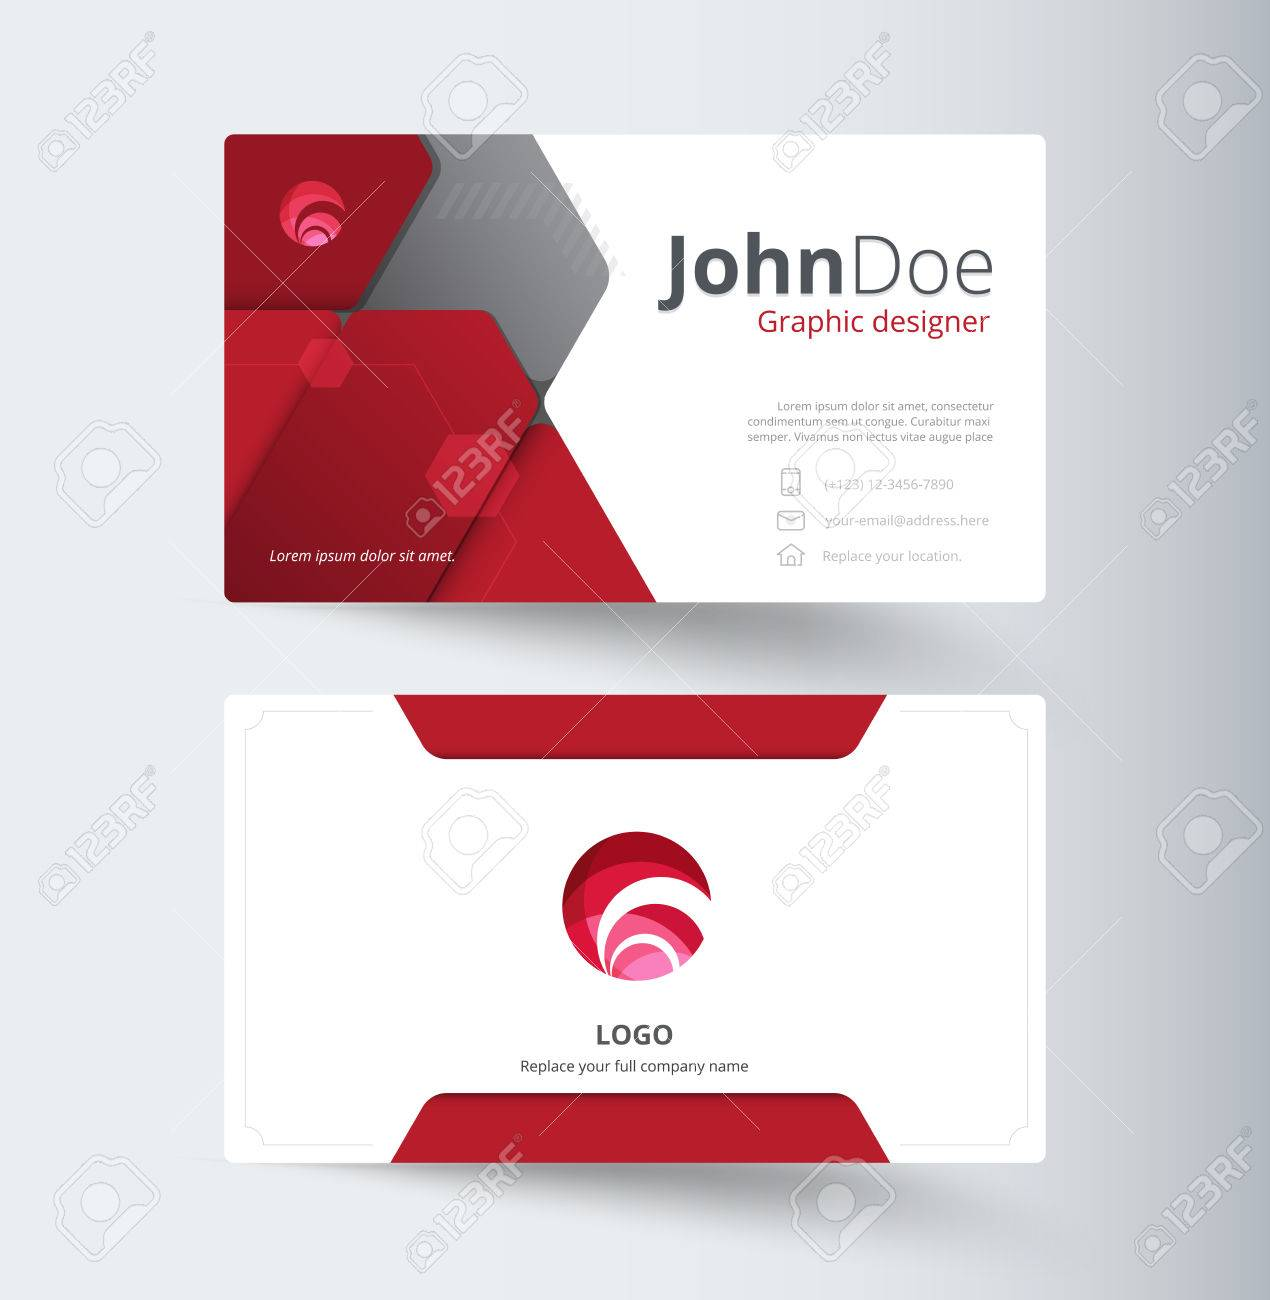 Red Abstract Business Contact Card Template Design Abstract - Contact card template